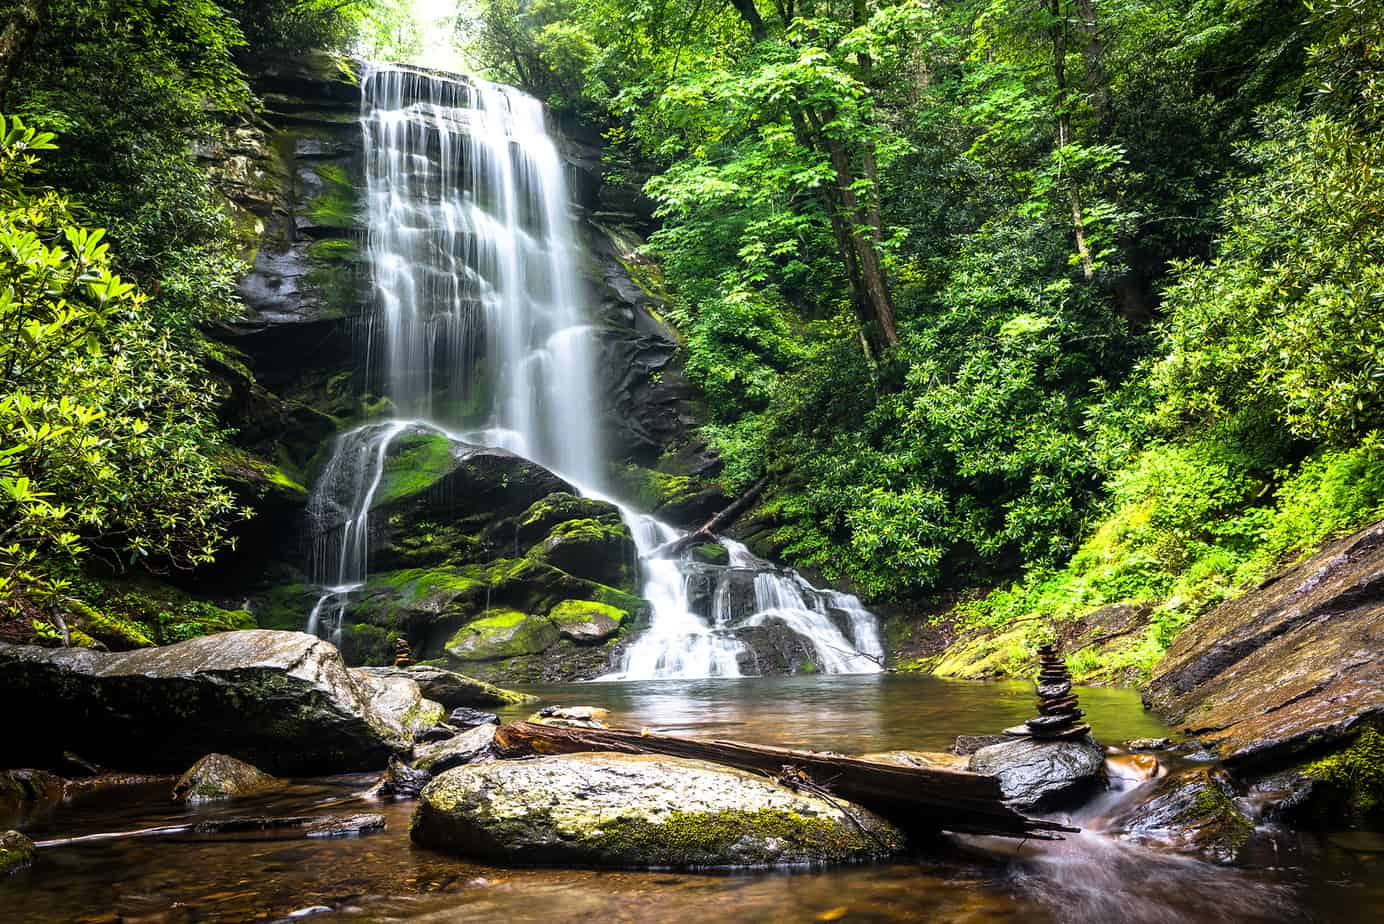 waterfall hikes near asheville - image of catawba falls, gentle waterfall over rocks surrounded by green plants